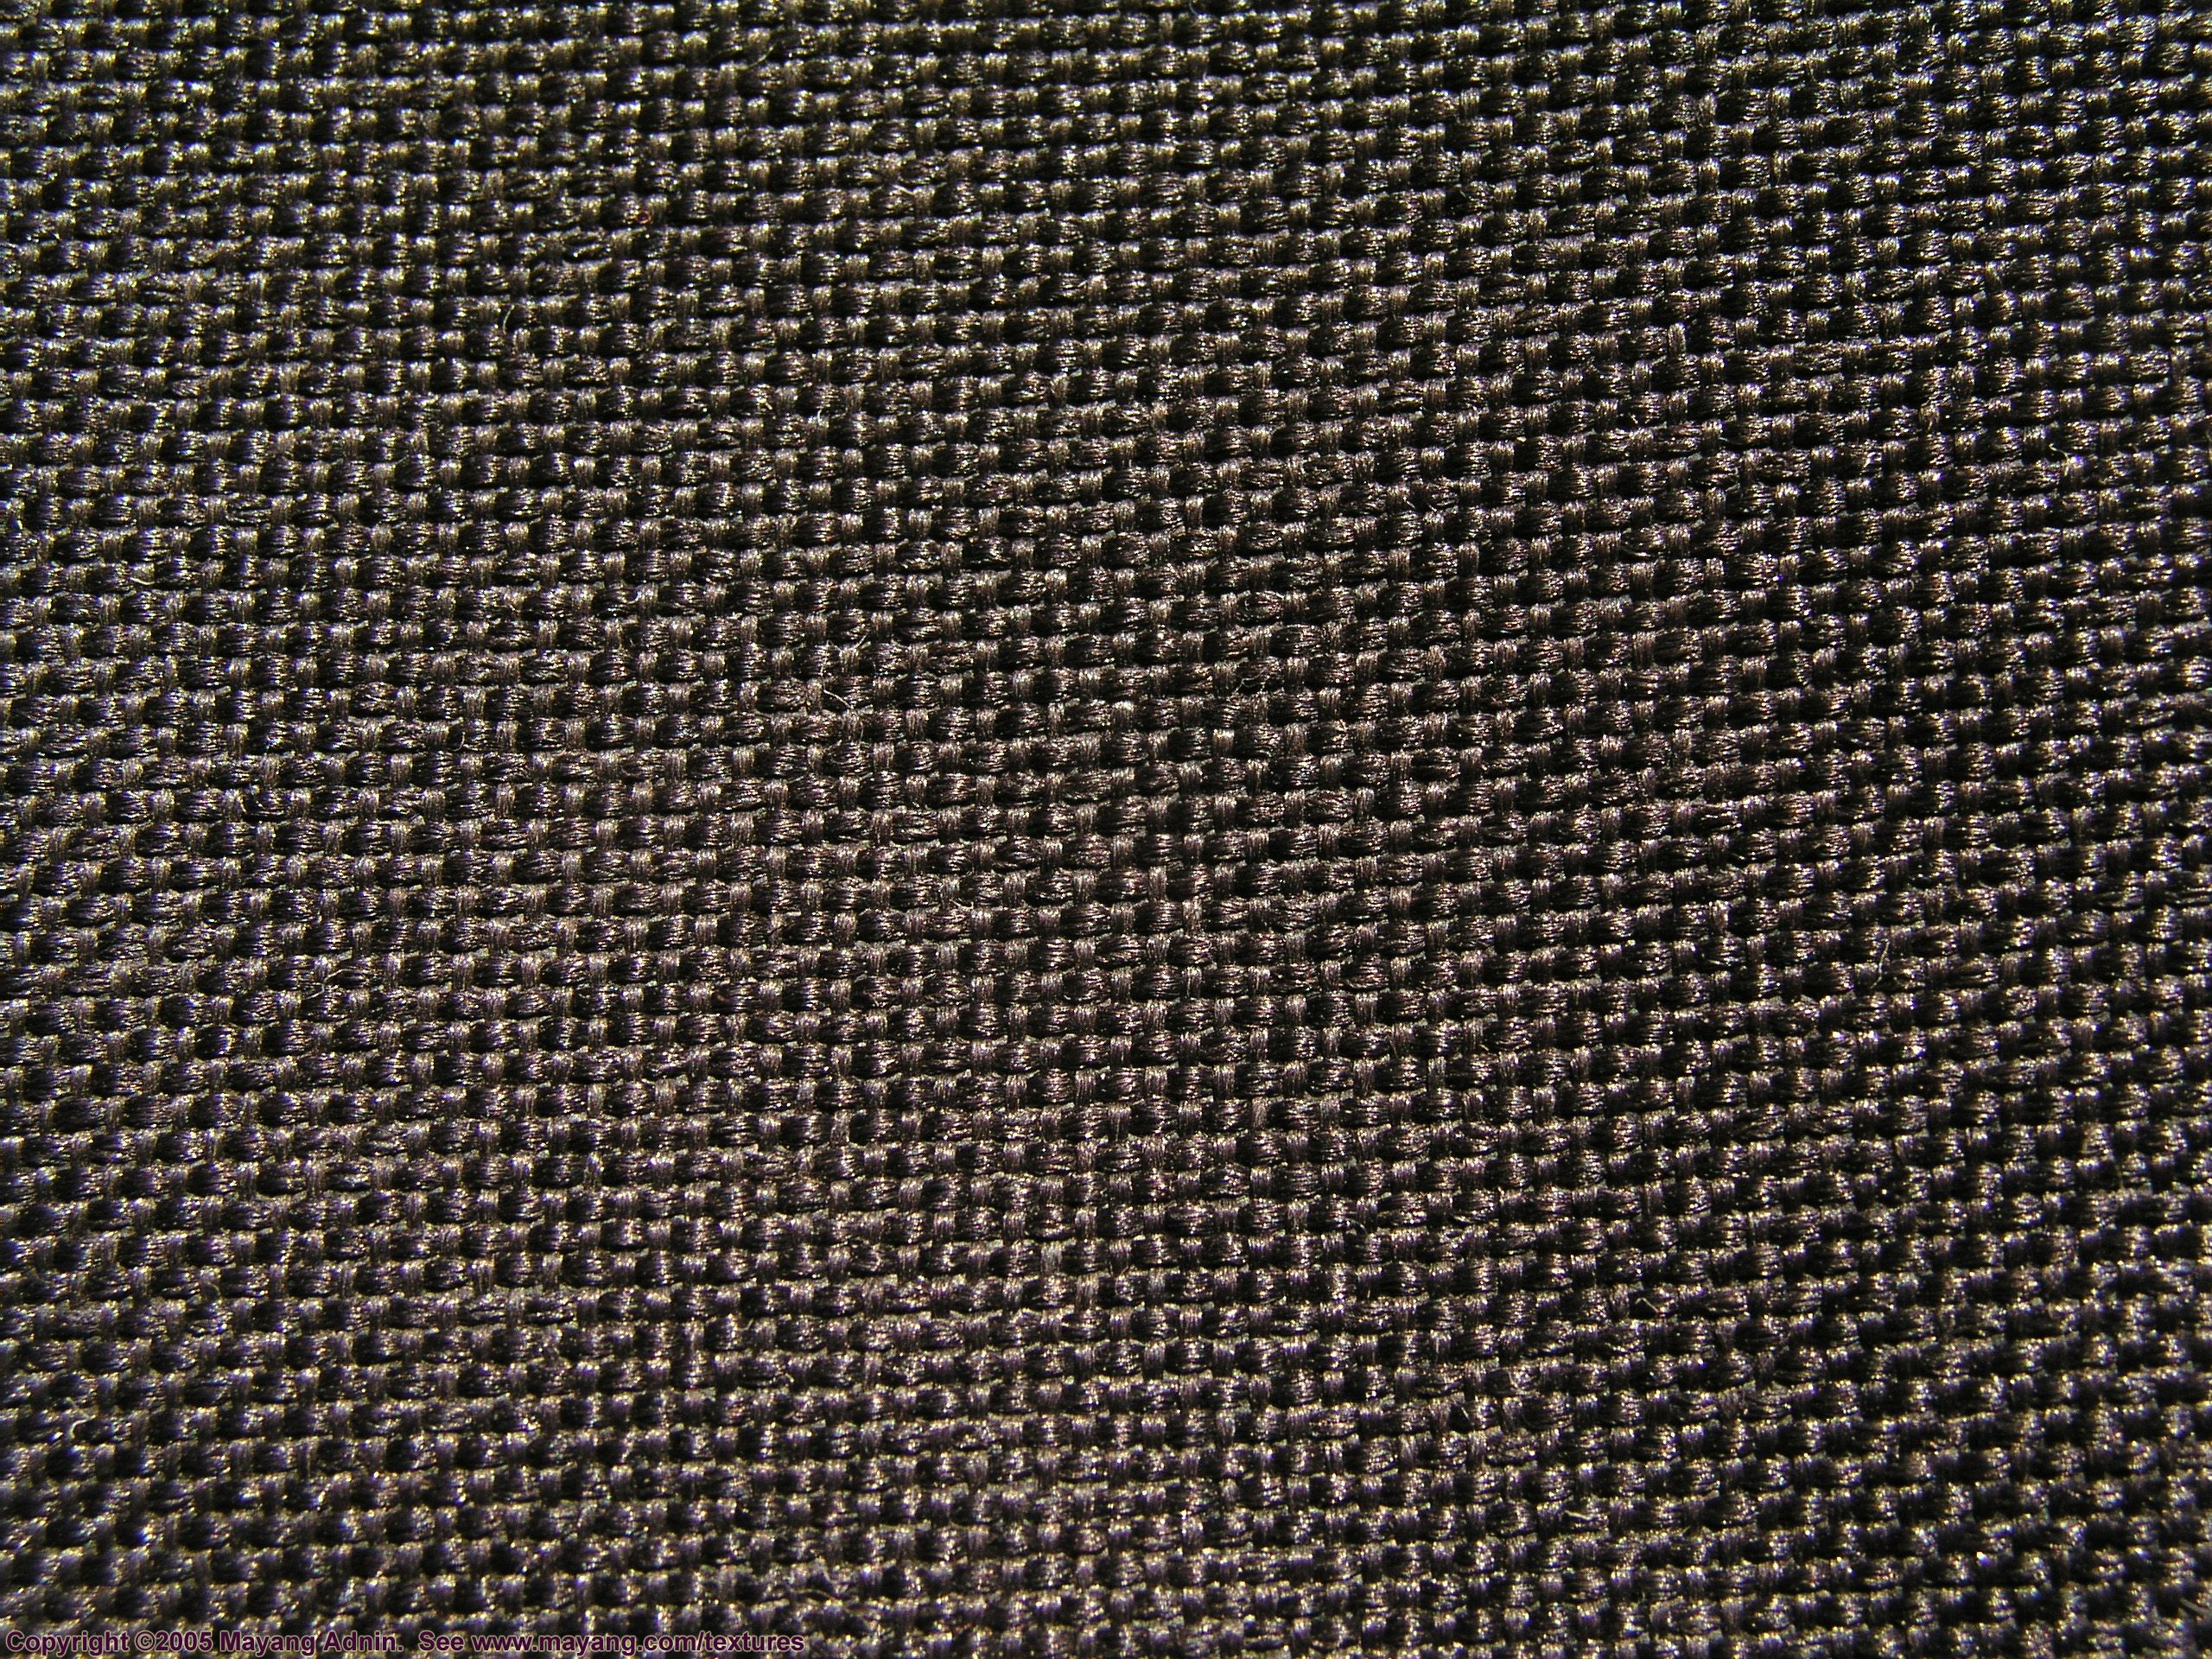 Fabric Textures Serve A Great Purpose To The Design Community Especially If Youre Working On Textile Related Projects Here You Will Find 25 HD